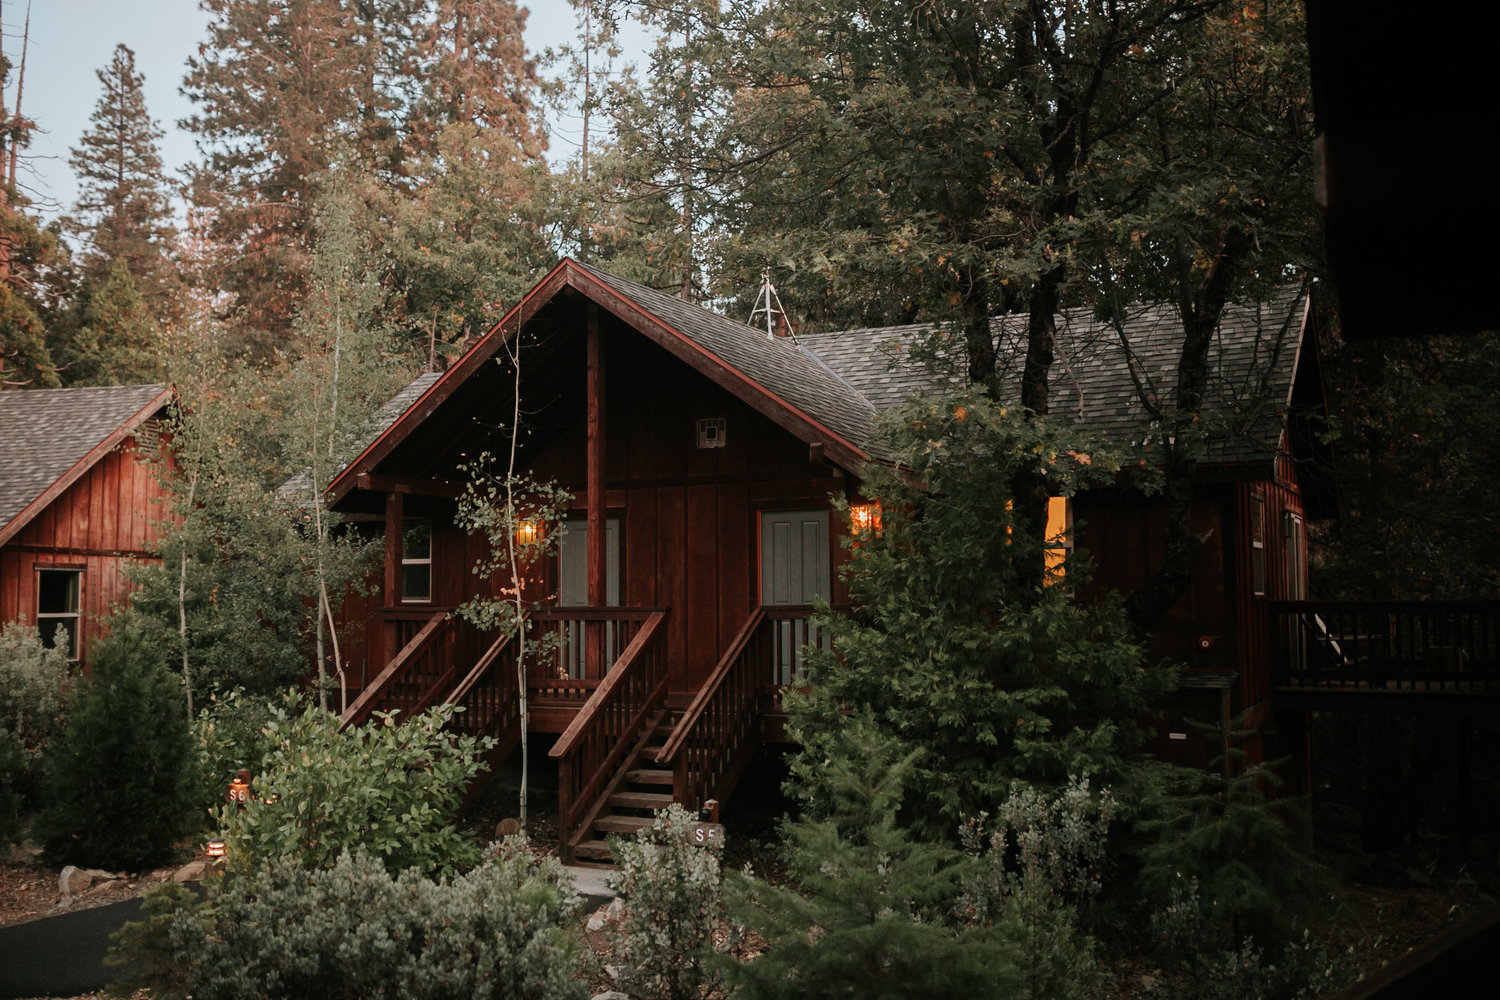 california cabin redwoods audley platinum national park usa cabins a hotels of yosemite example travel accommodation the in